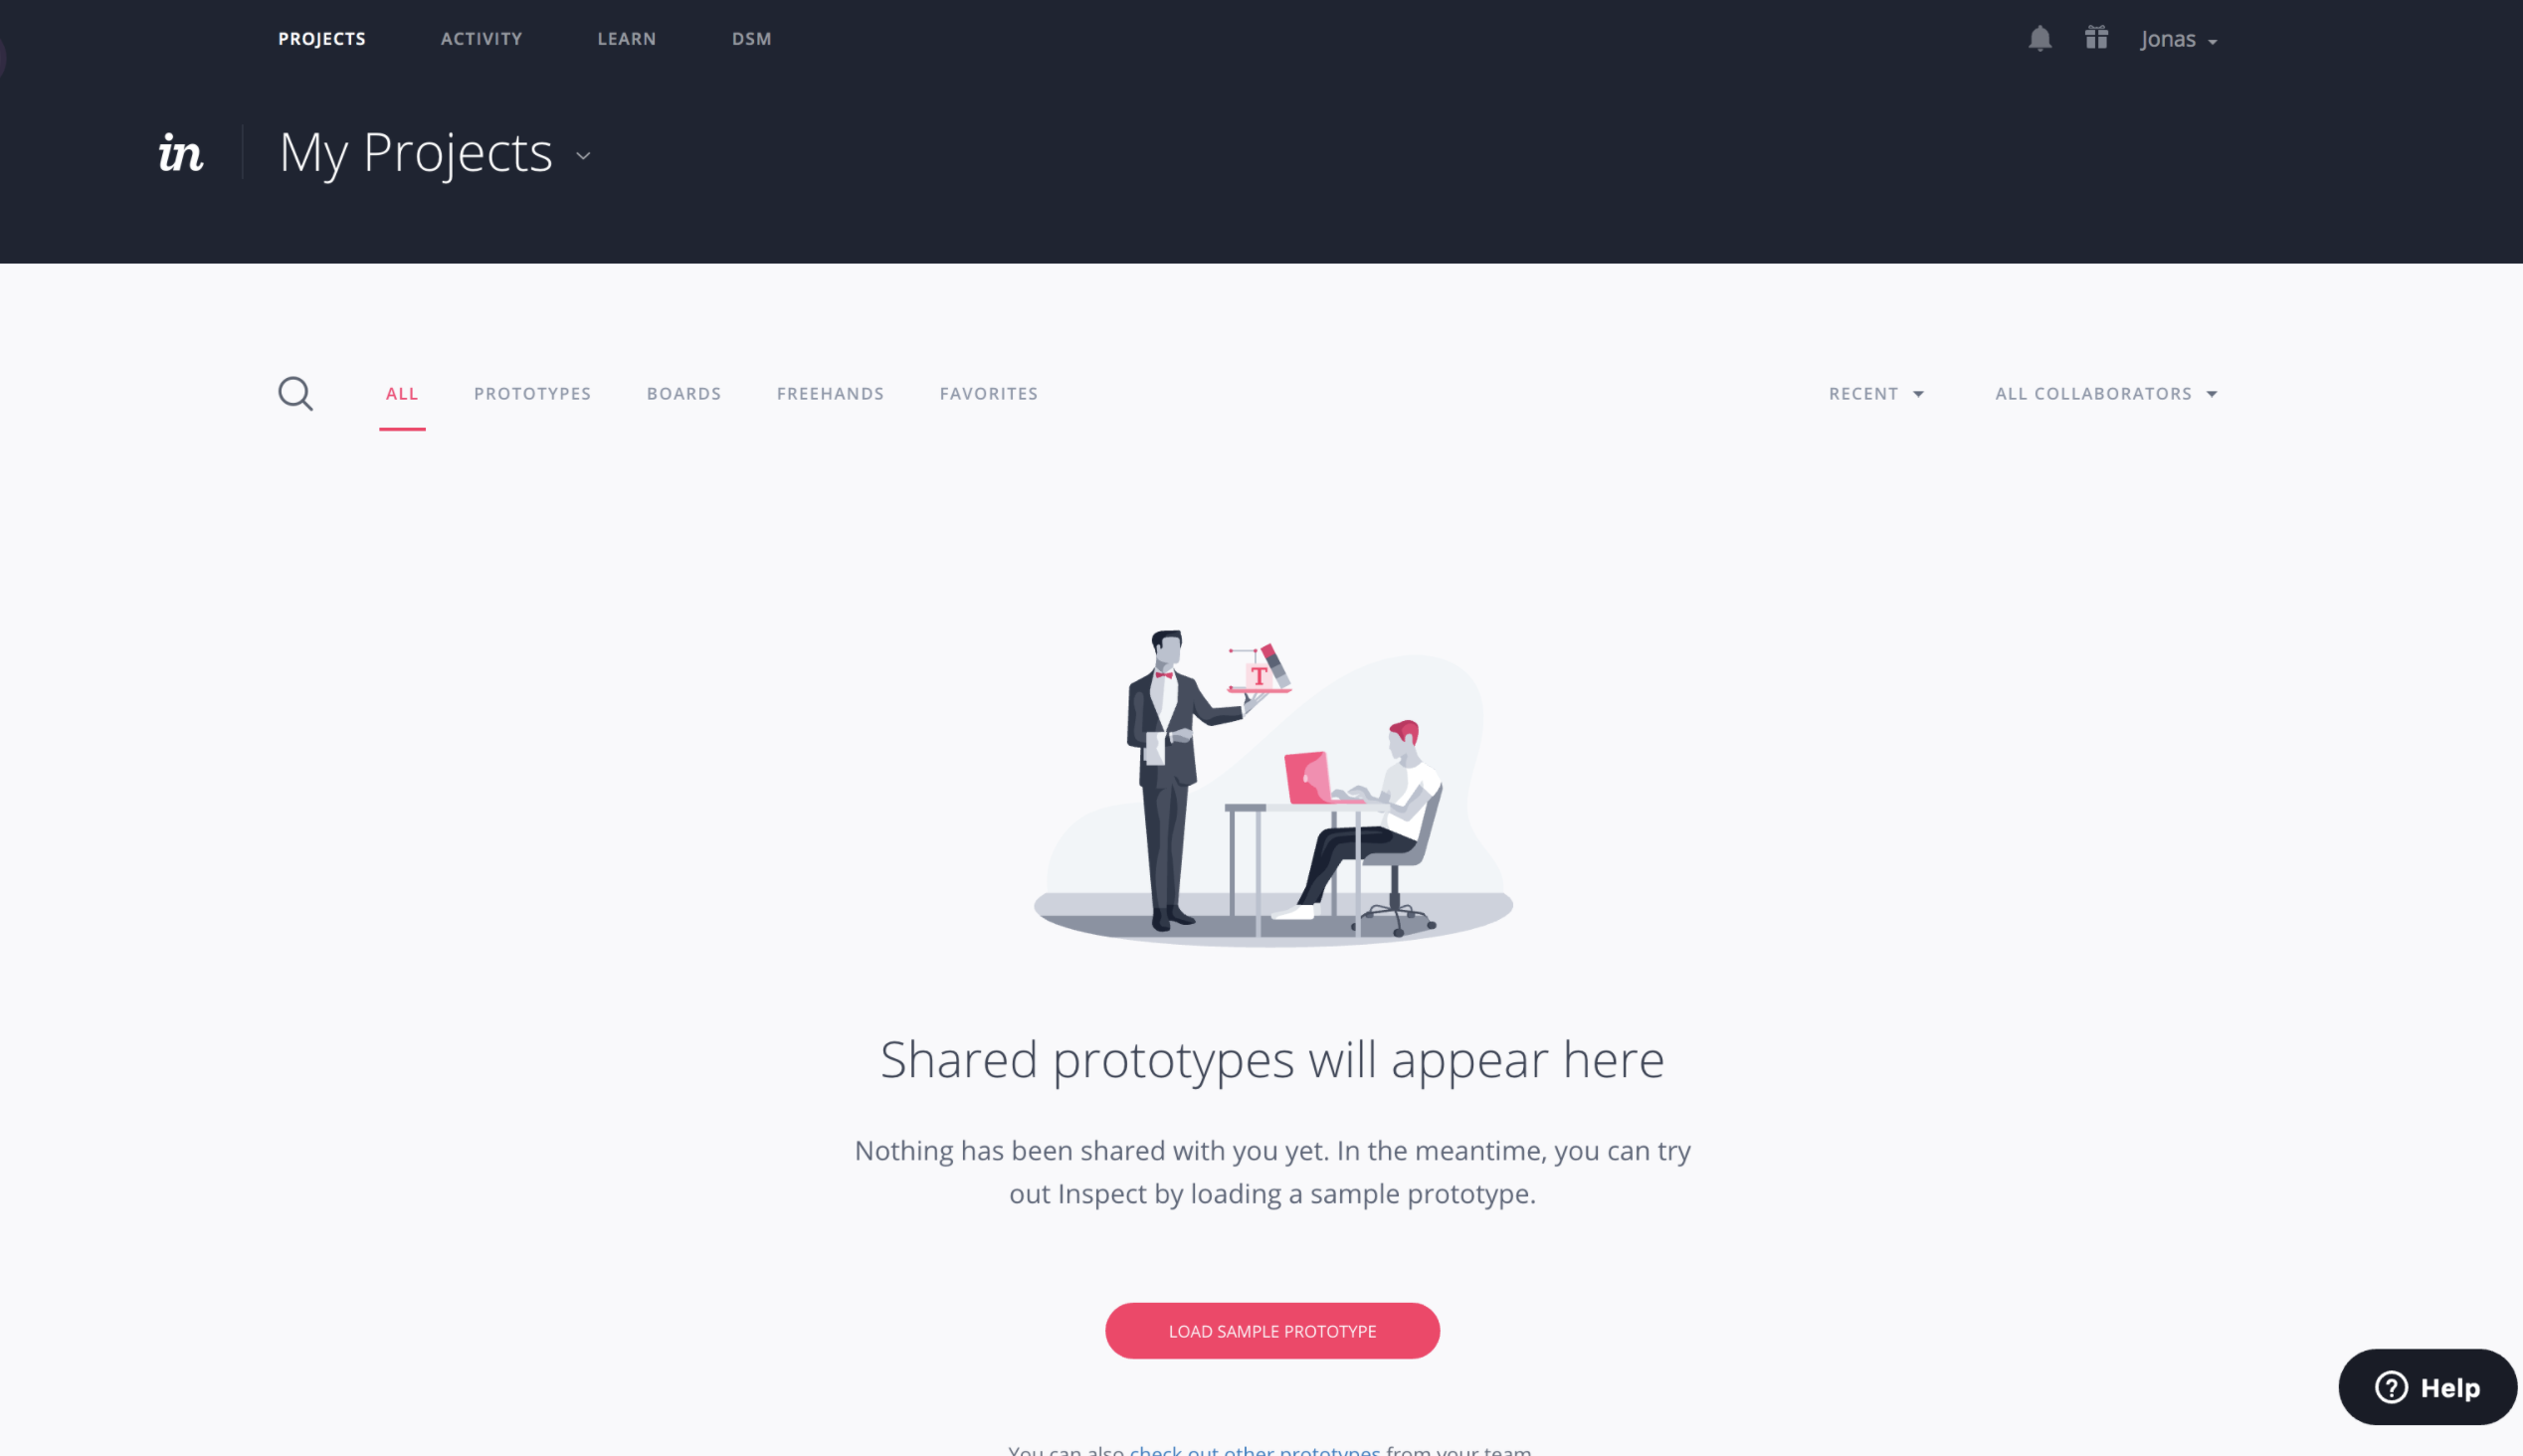 invision-cloud-v6-empty-state-for-developers.png